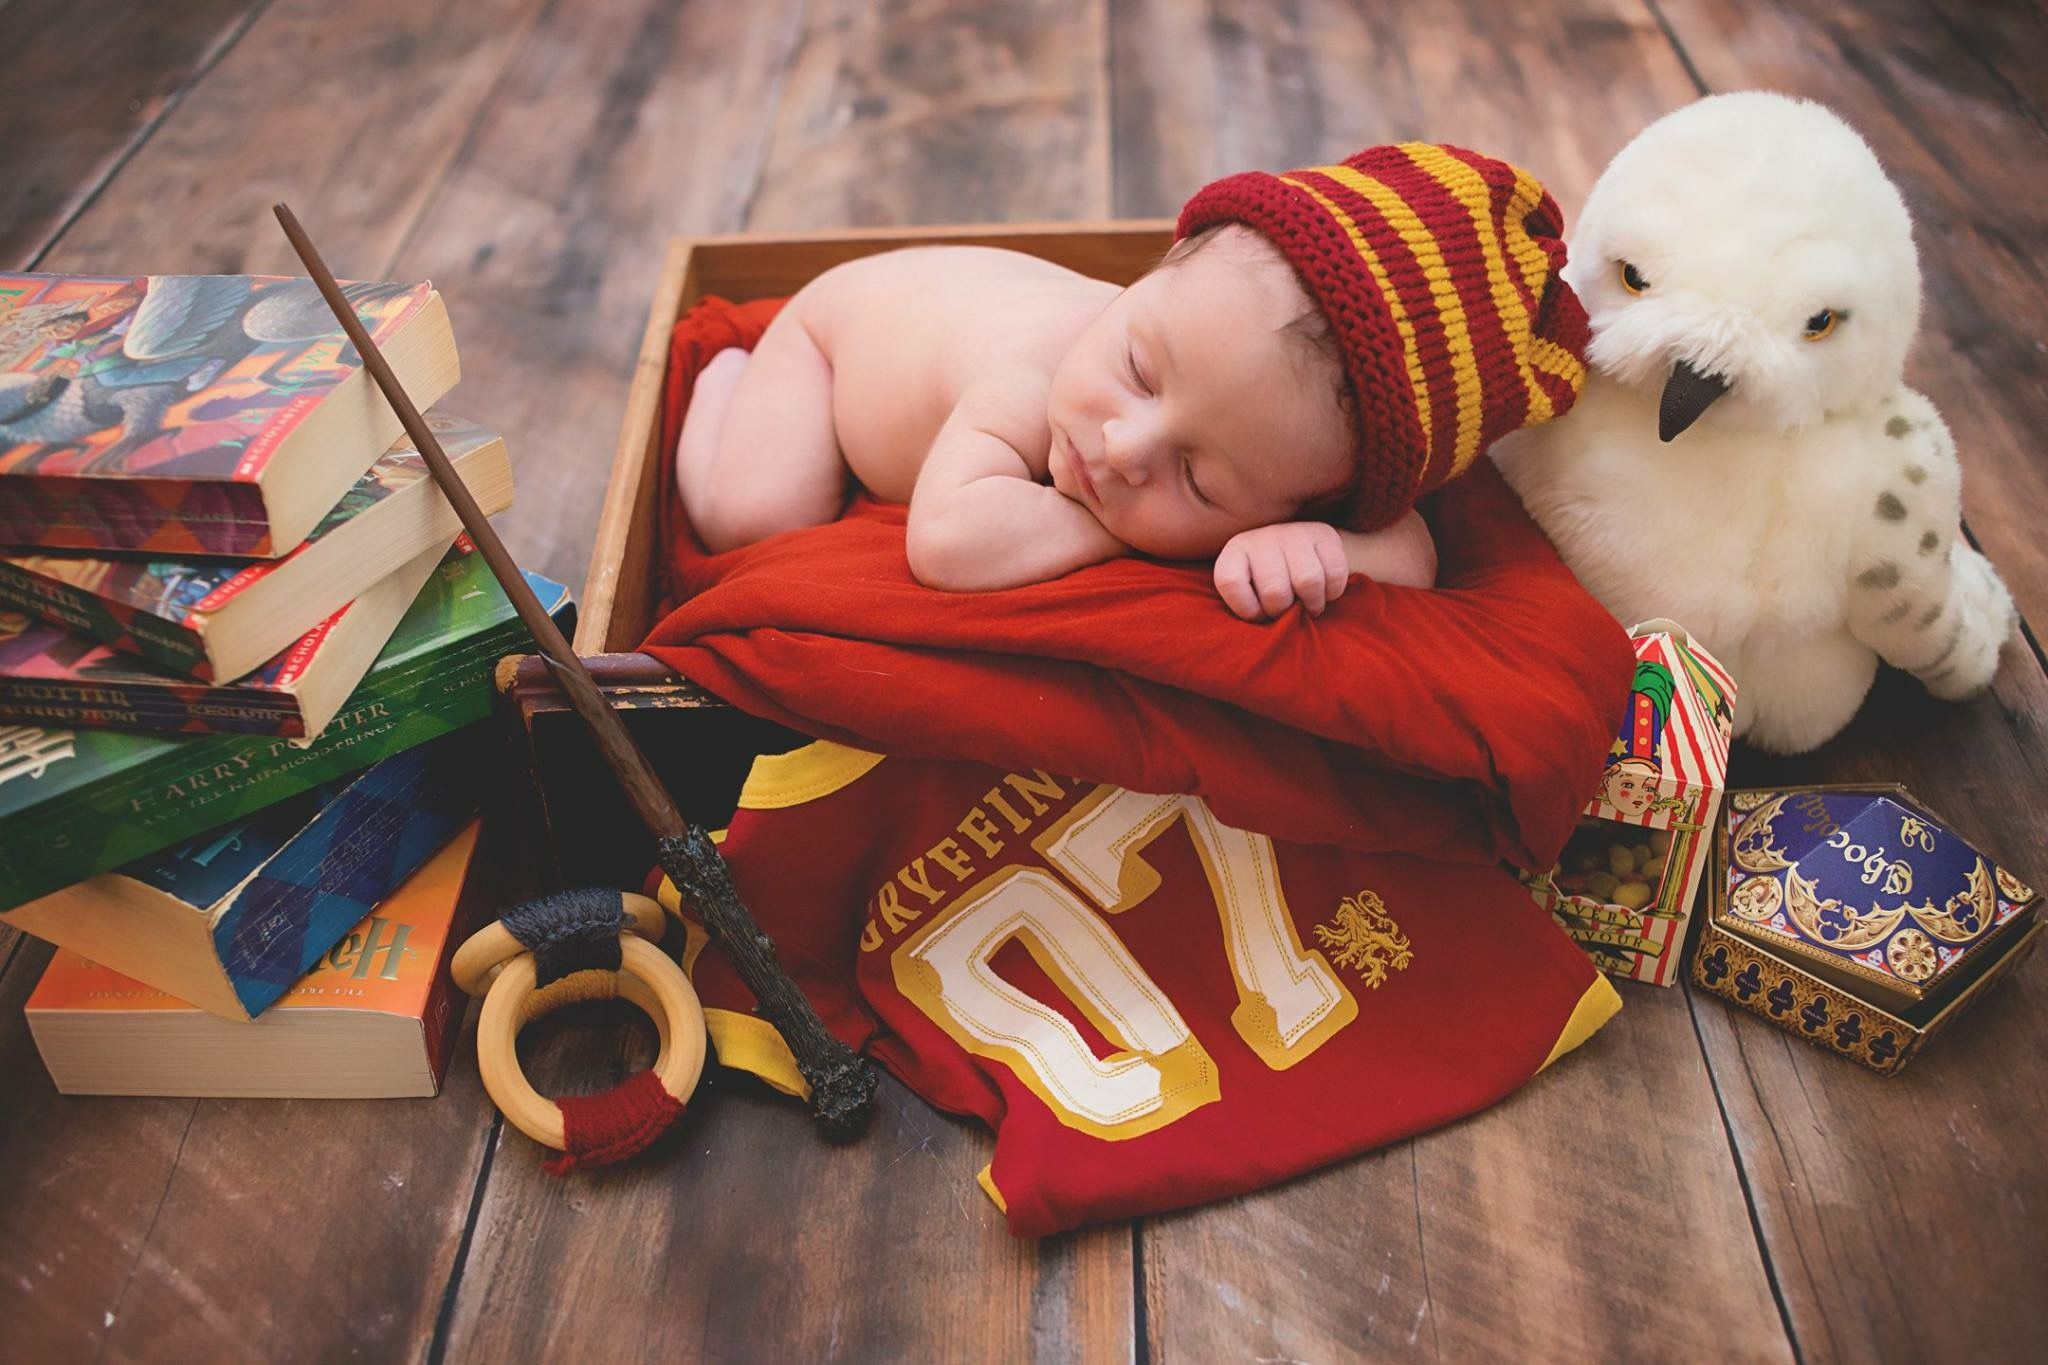 Harry potter themed newborn photo shoot with my youngest ⚡️